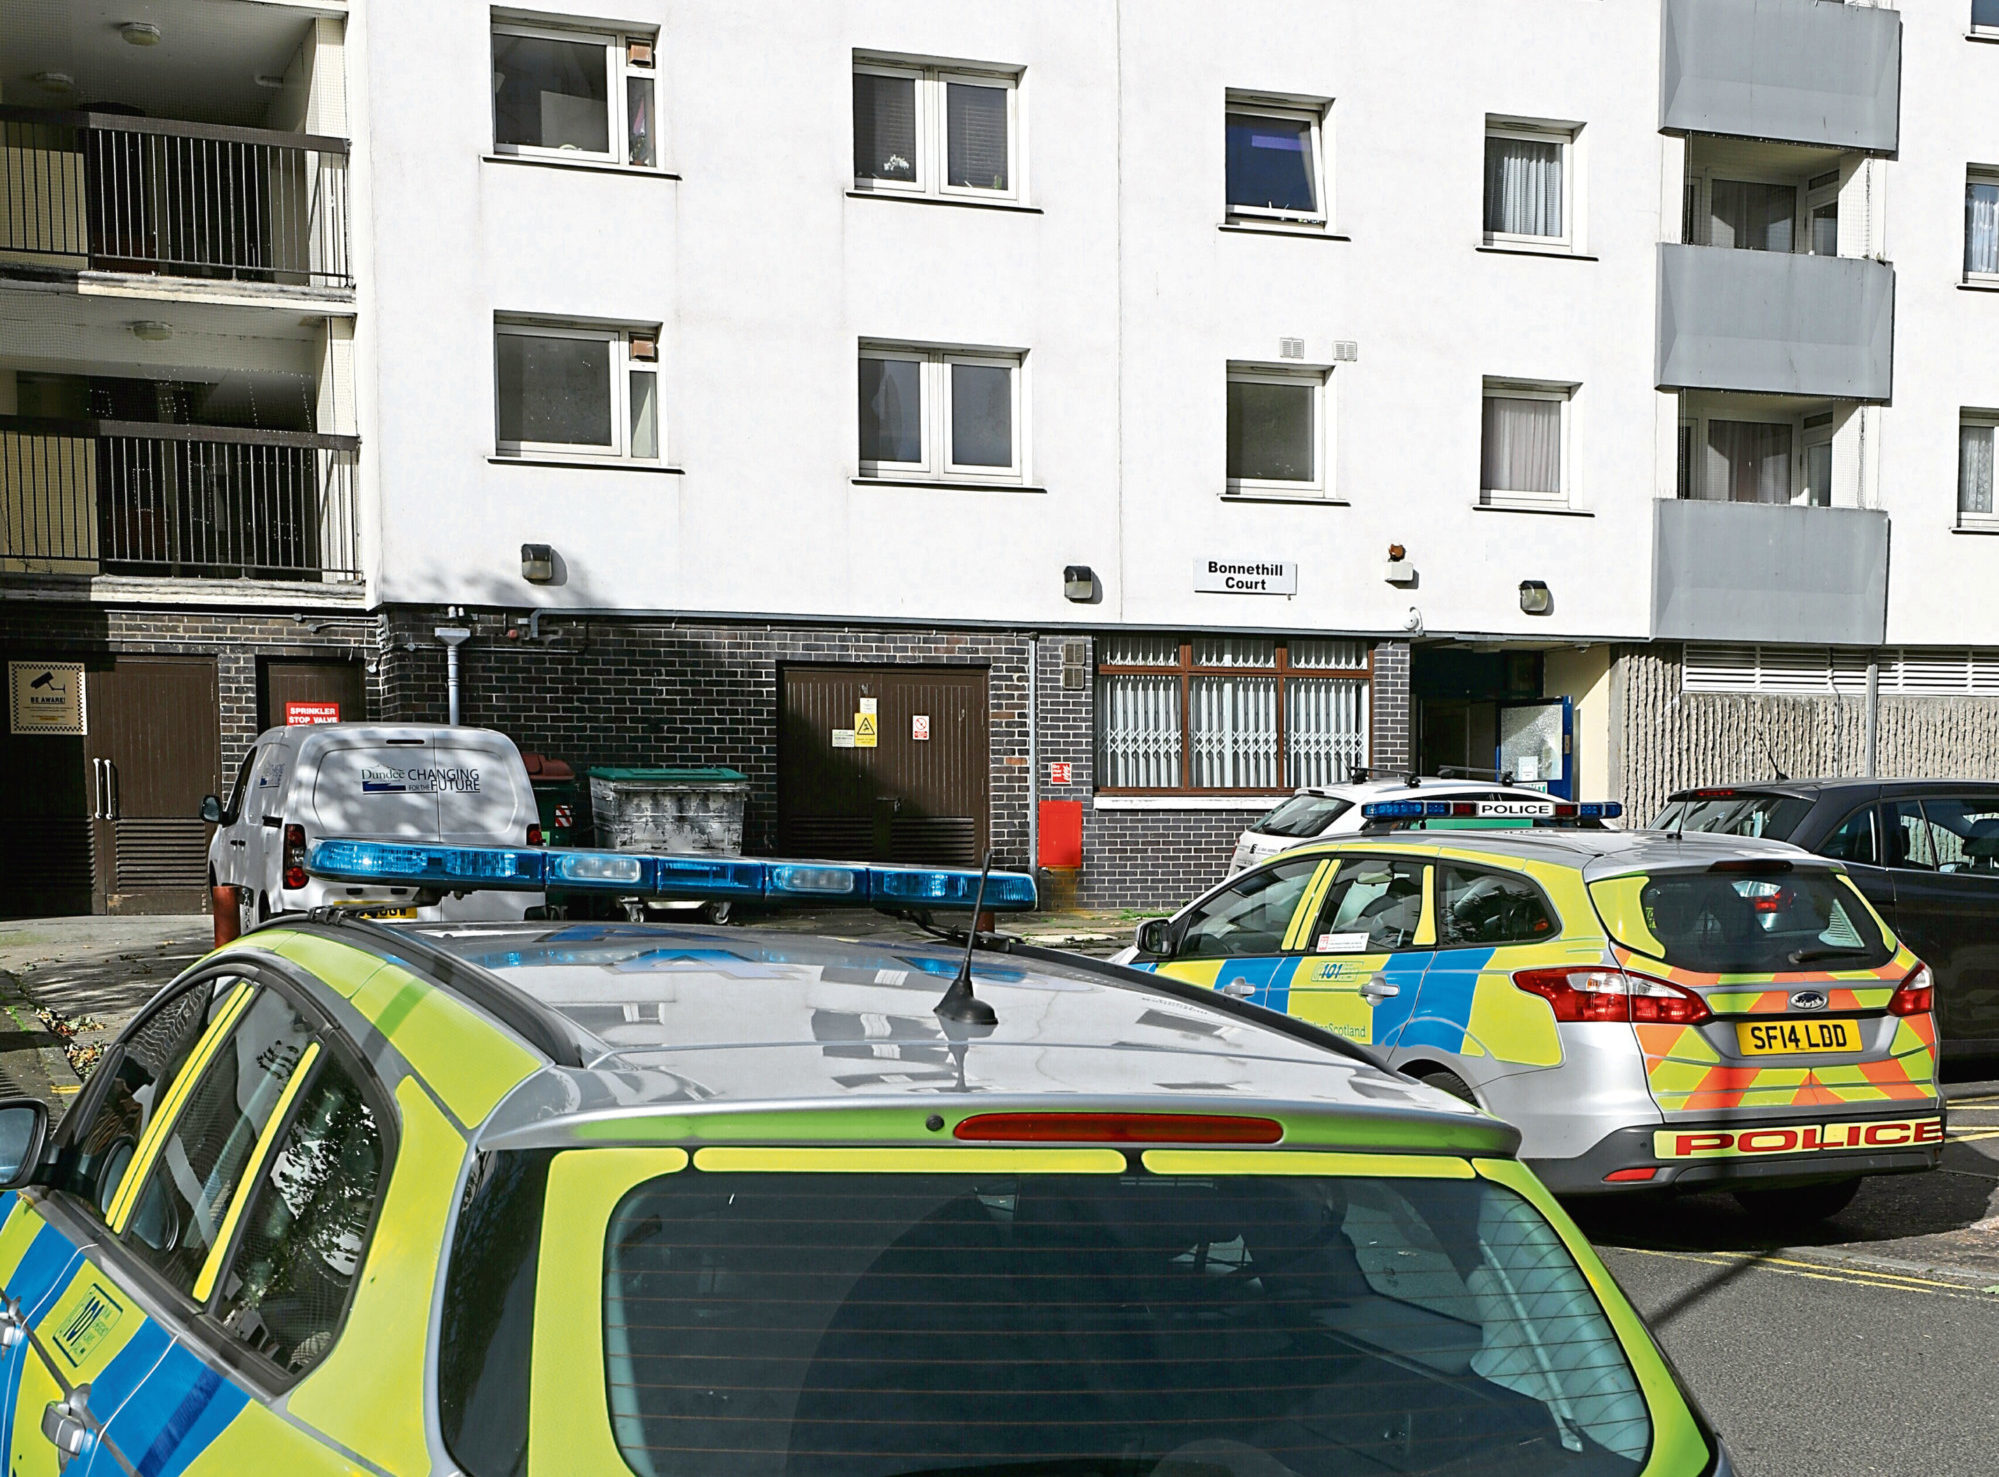 Police presence at Bonnethill Court in Hilltown, Dundee